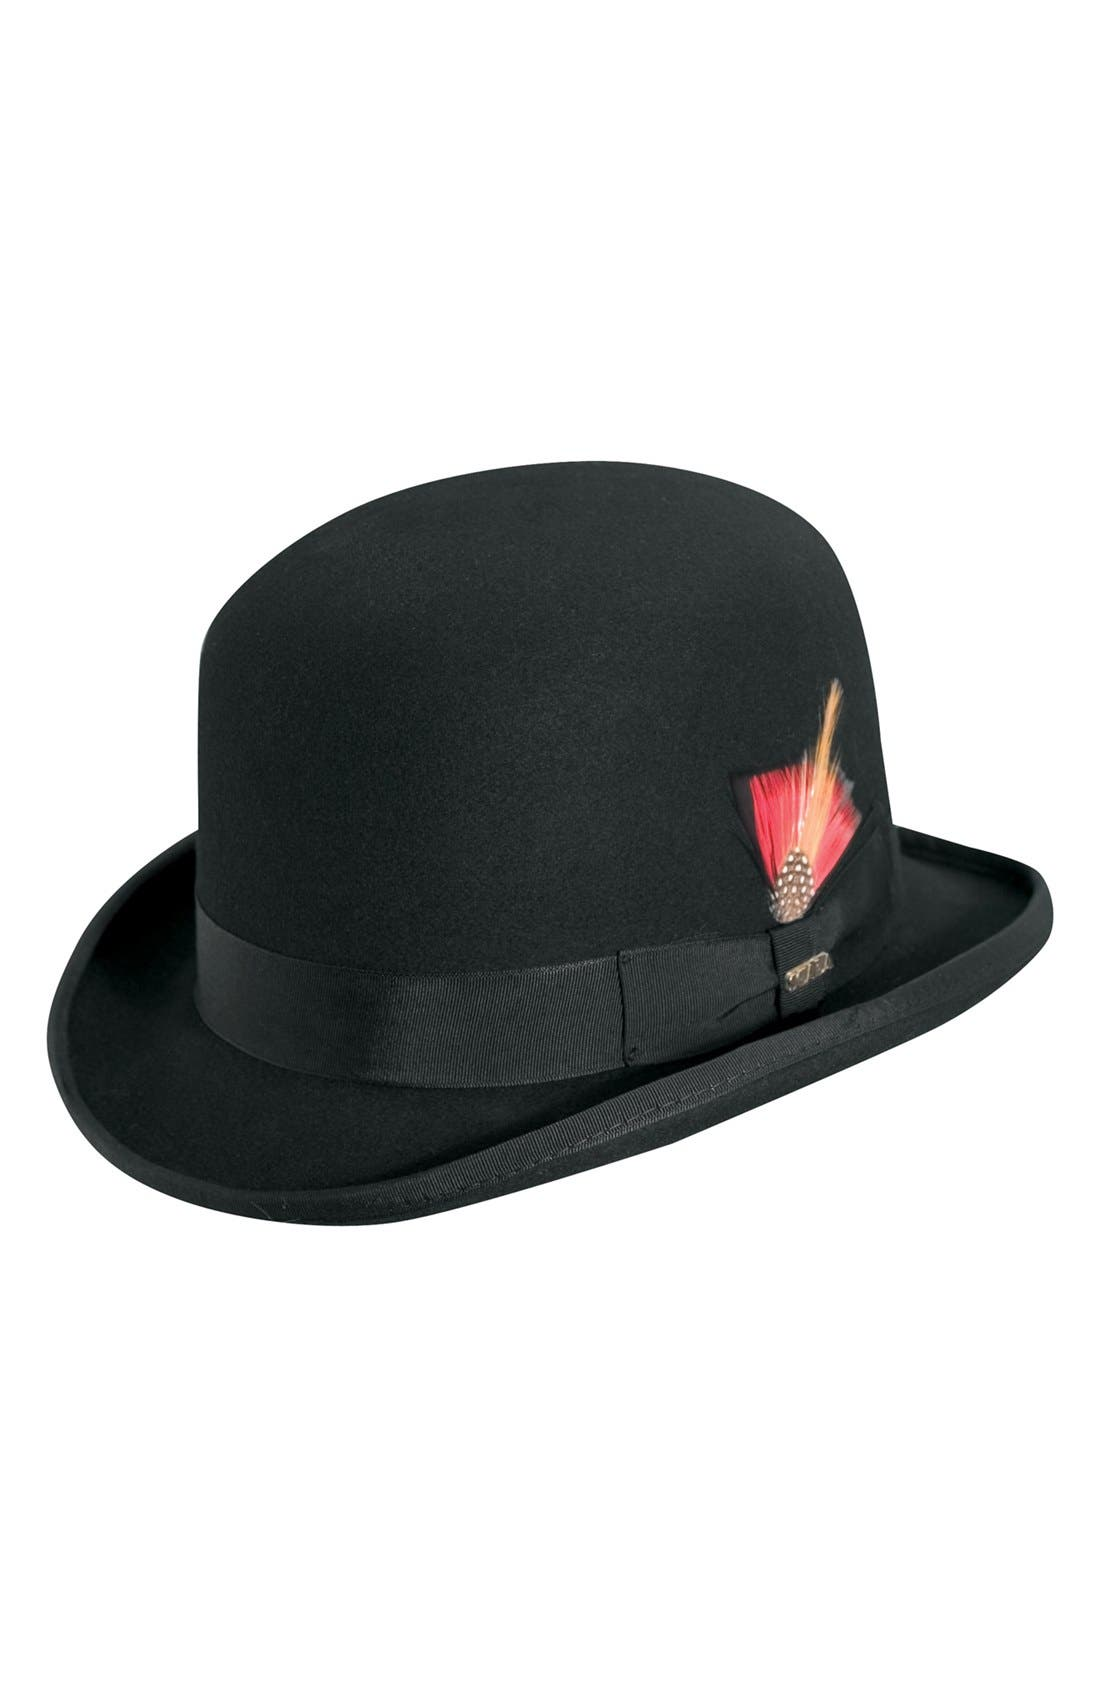 'Classico' Wool Felt Derby Hat,                             Main thumbnail 1, color,                             Black